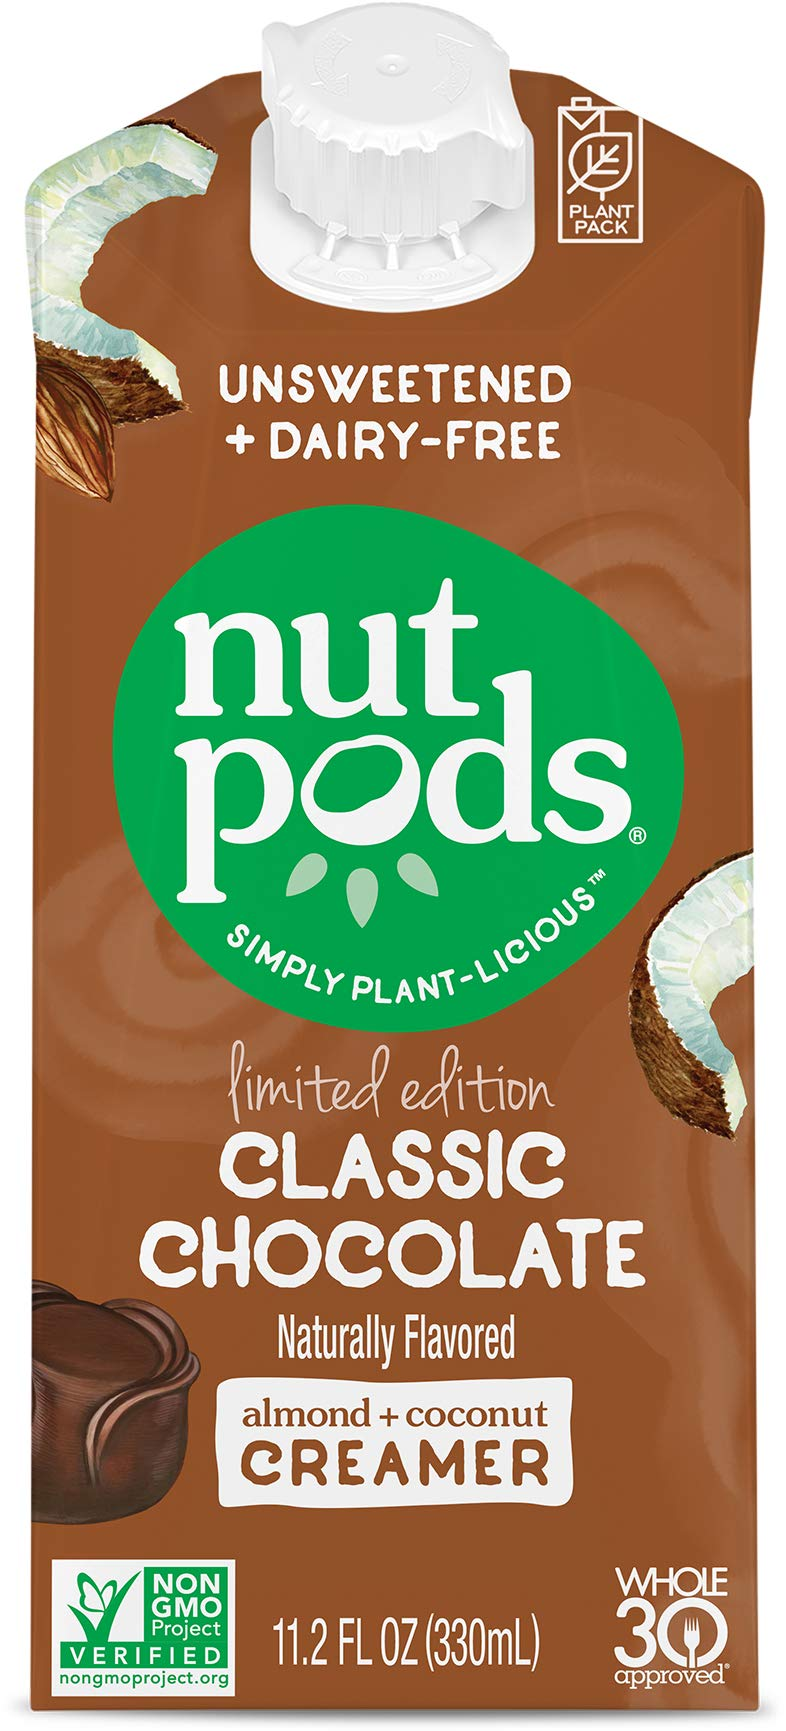 nutpods Classic Chocolate, Unsweetened Dairy-Free Liquid Coffee Creamer Made From Almond and Coconut (6-pack)